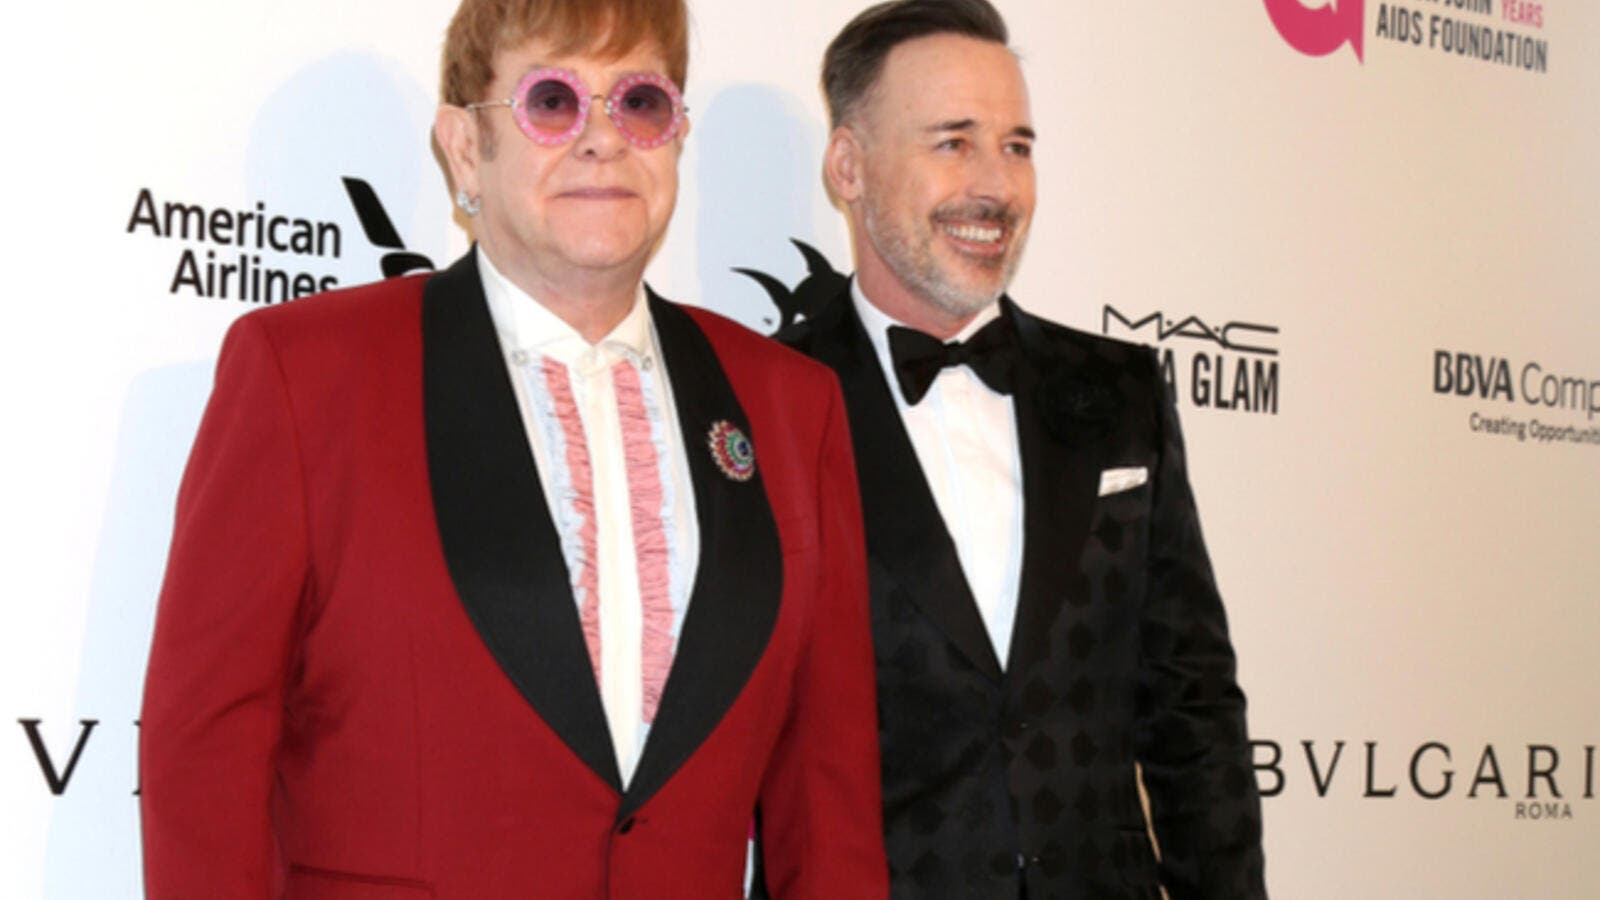 Elton received a beautiful bouquet of flowers and birthday cards from his children, which he shared on Instagram as well. (Source: Kathy Hutchins - Shutterstock)